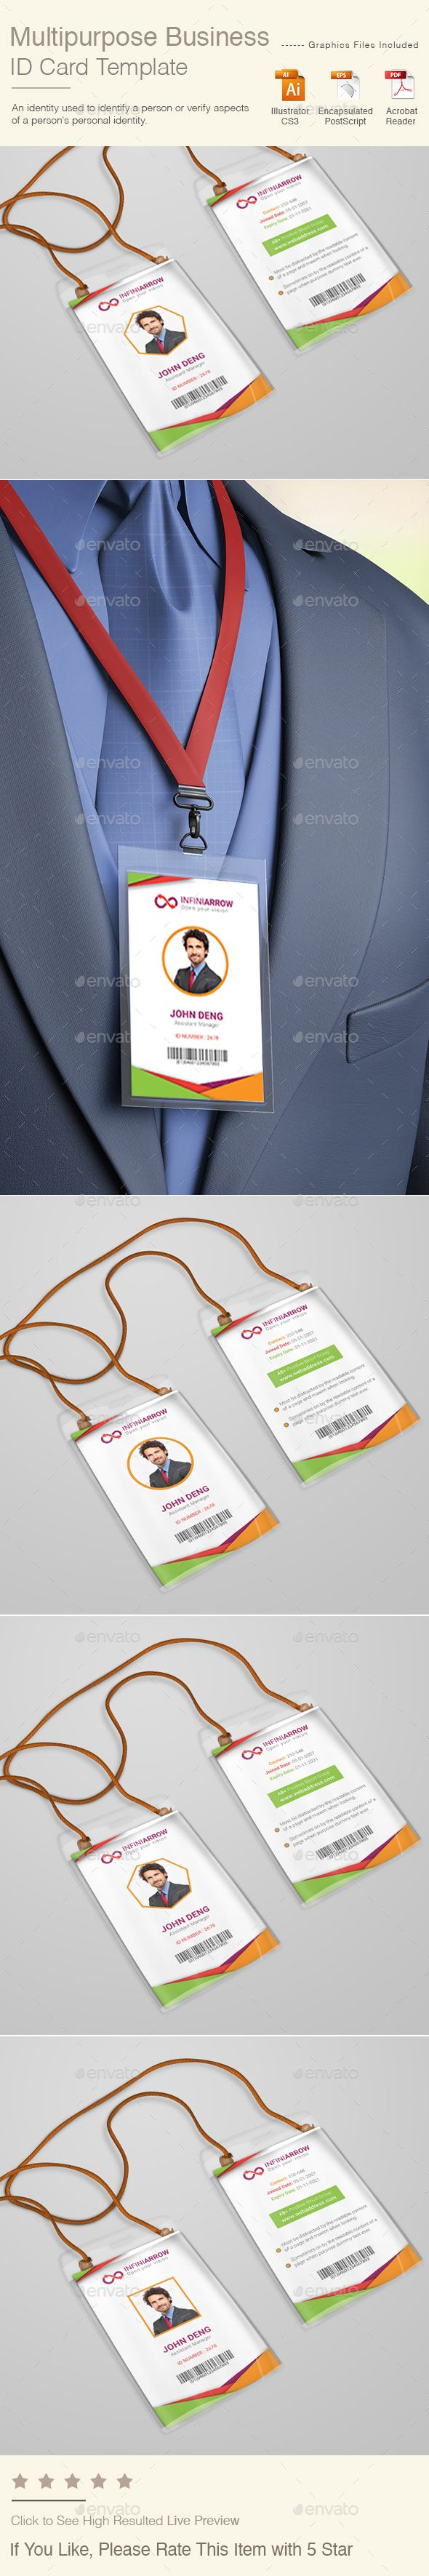 Multipurpose Business ID Card Template